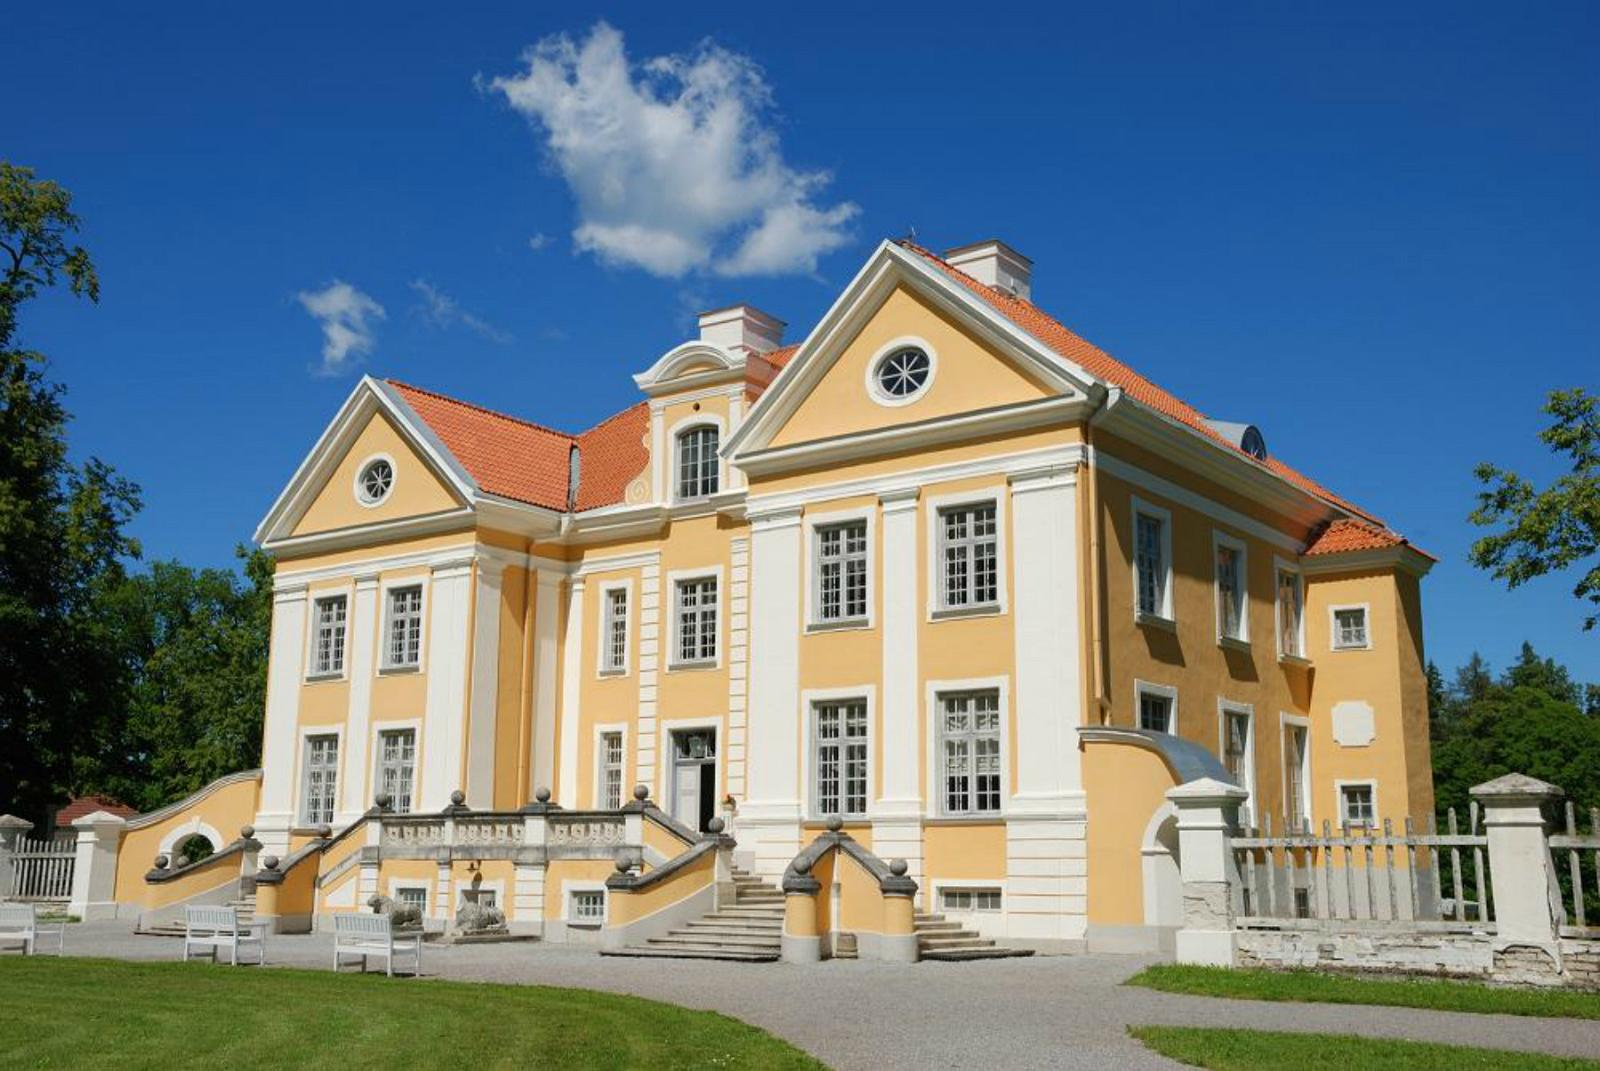 Palmse manor and open air museum estonia for Home manor